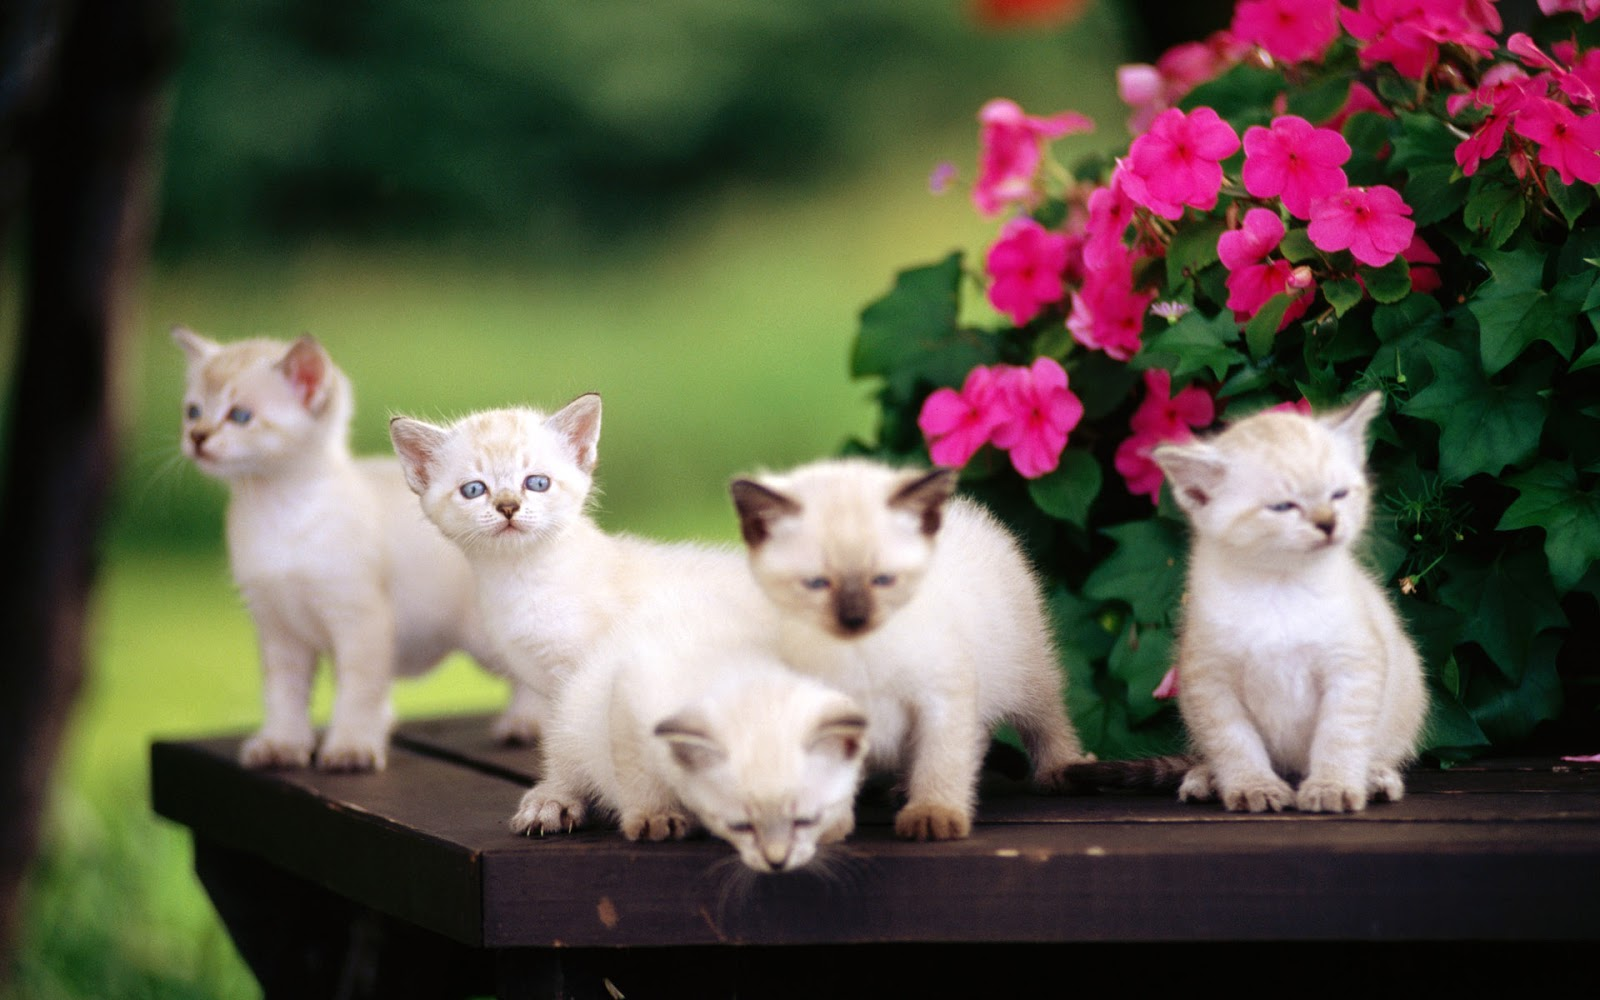 Cat Mobile Wallpapers 16 Wallpapers Adorable Wallpapers